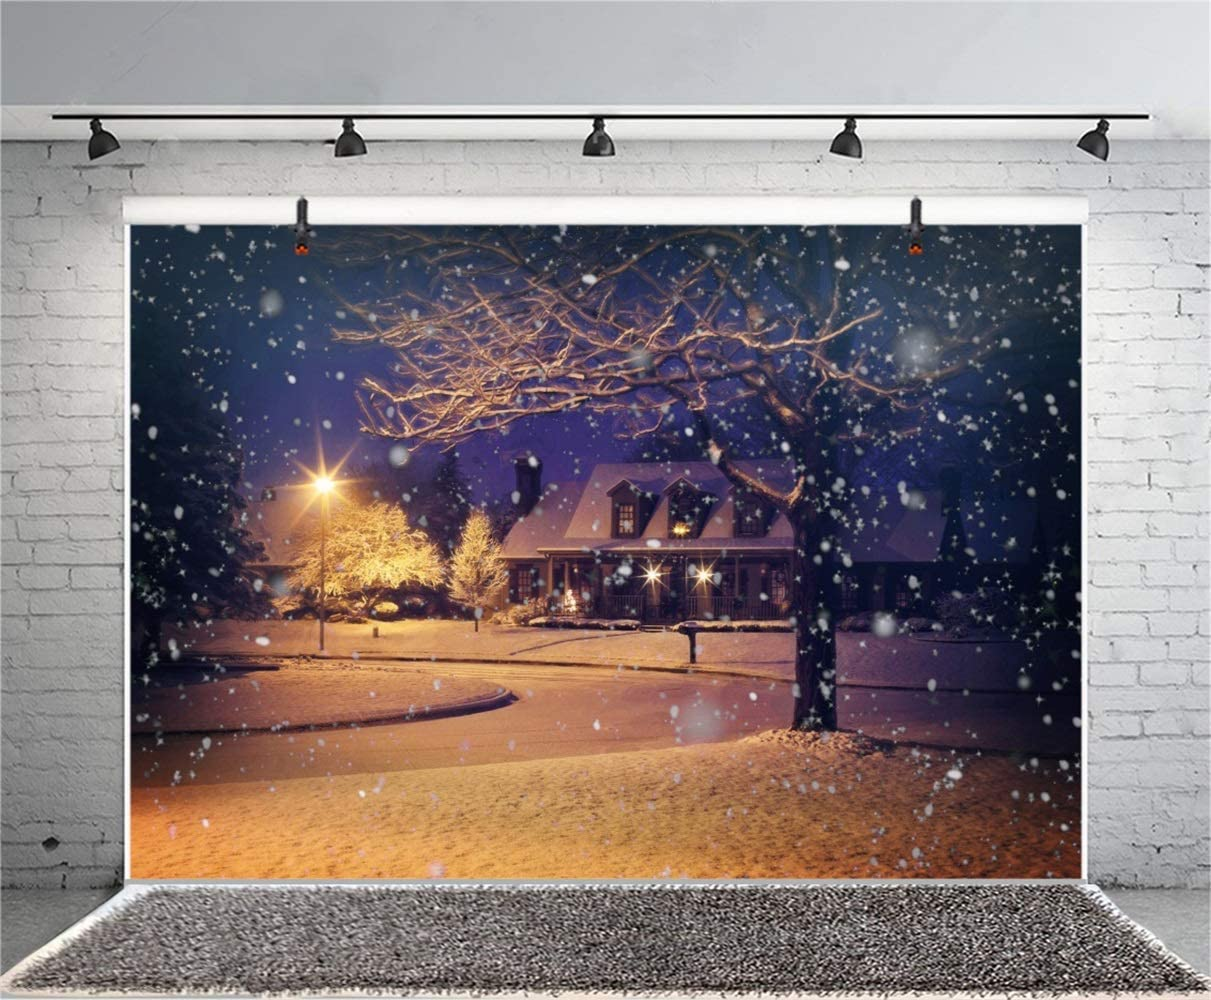 Christmas New Year Theme Snowscape Backdrop Polyester 8x6.5ft Snowy Night House Frontage Road Lantern Big Tree Photo Background Xmas New Year Wintery Party Banner Child Baby Adult Portrait Shoot